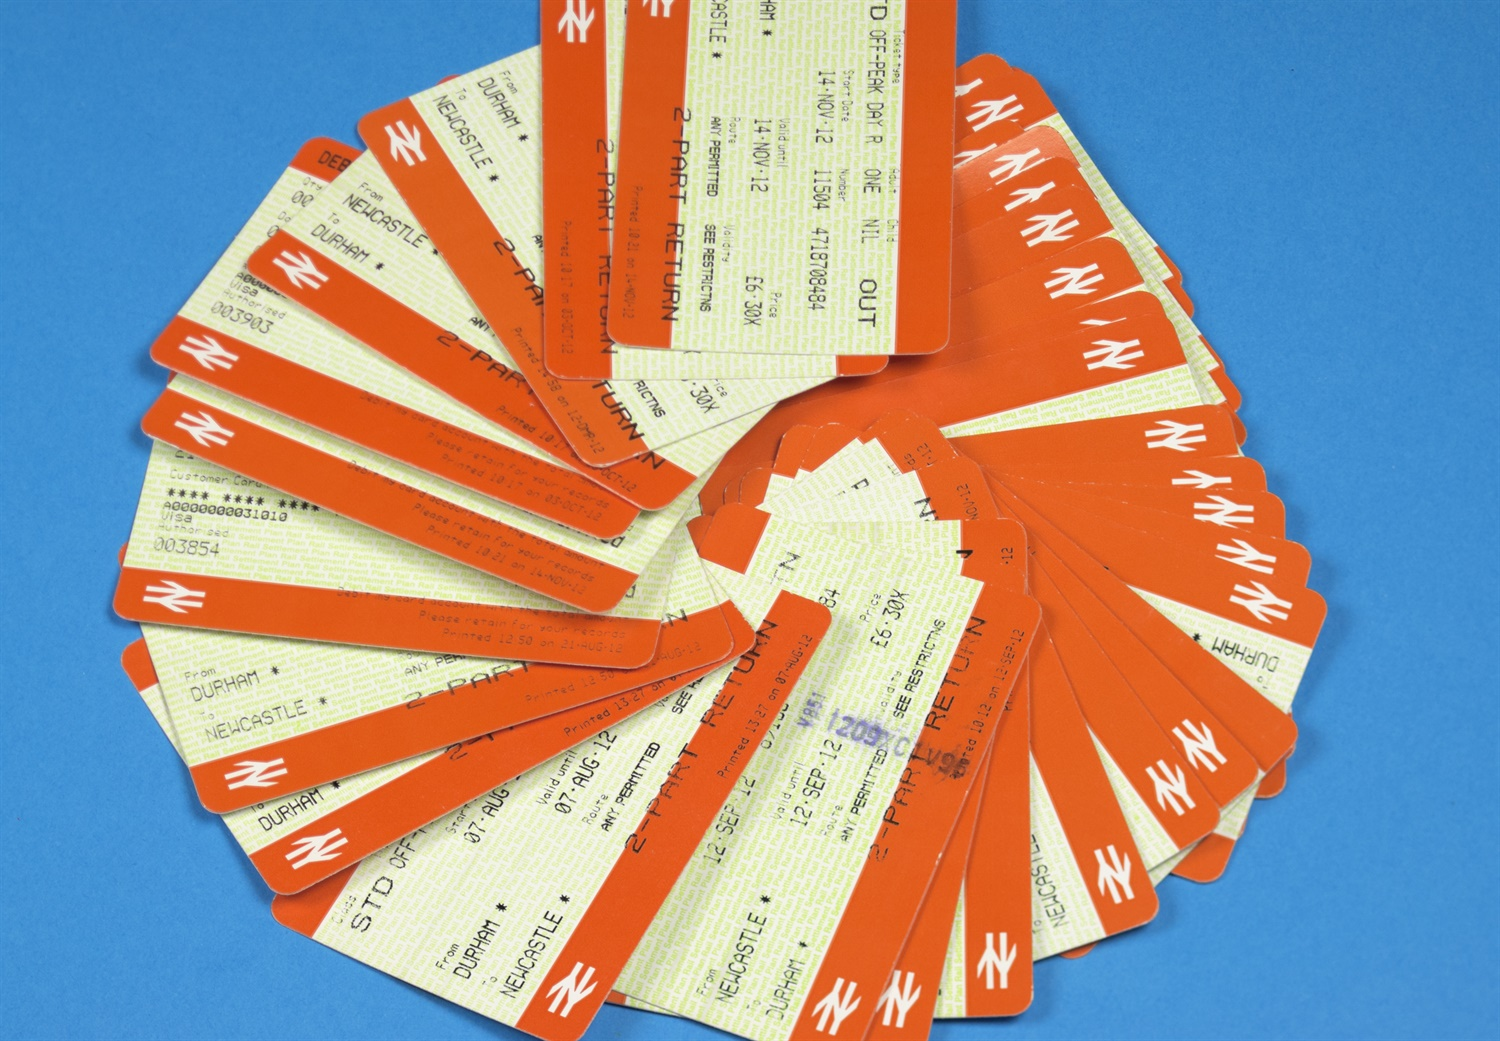 Rail industry to cut the jargon on confusing train tickets